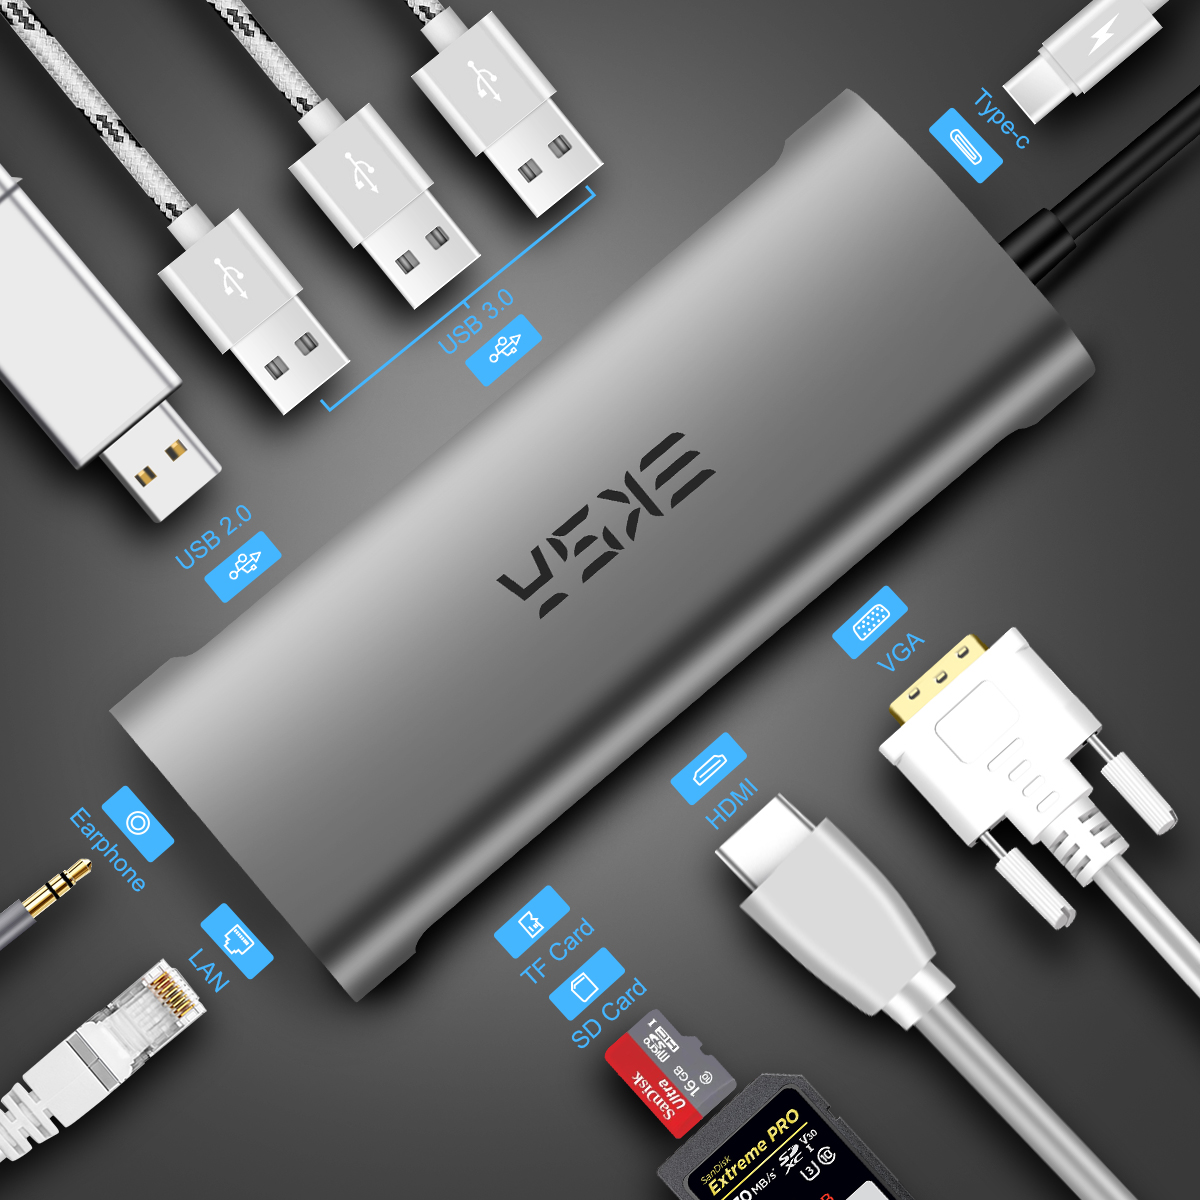 EKSA USB HUB C HUB to USB 3.0 2.0 RJ45 VGA HDMI Adapter Dock for MacBook Pro Huawei Samsung USB-C Type C 3.0 Splitter USB C HUB